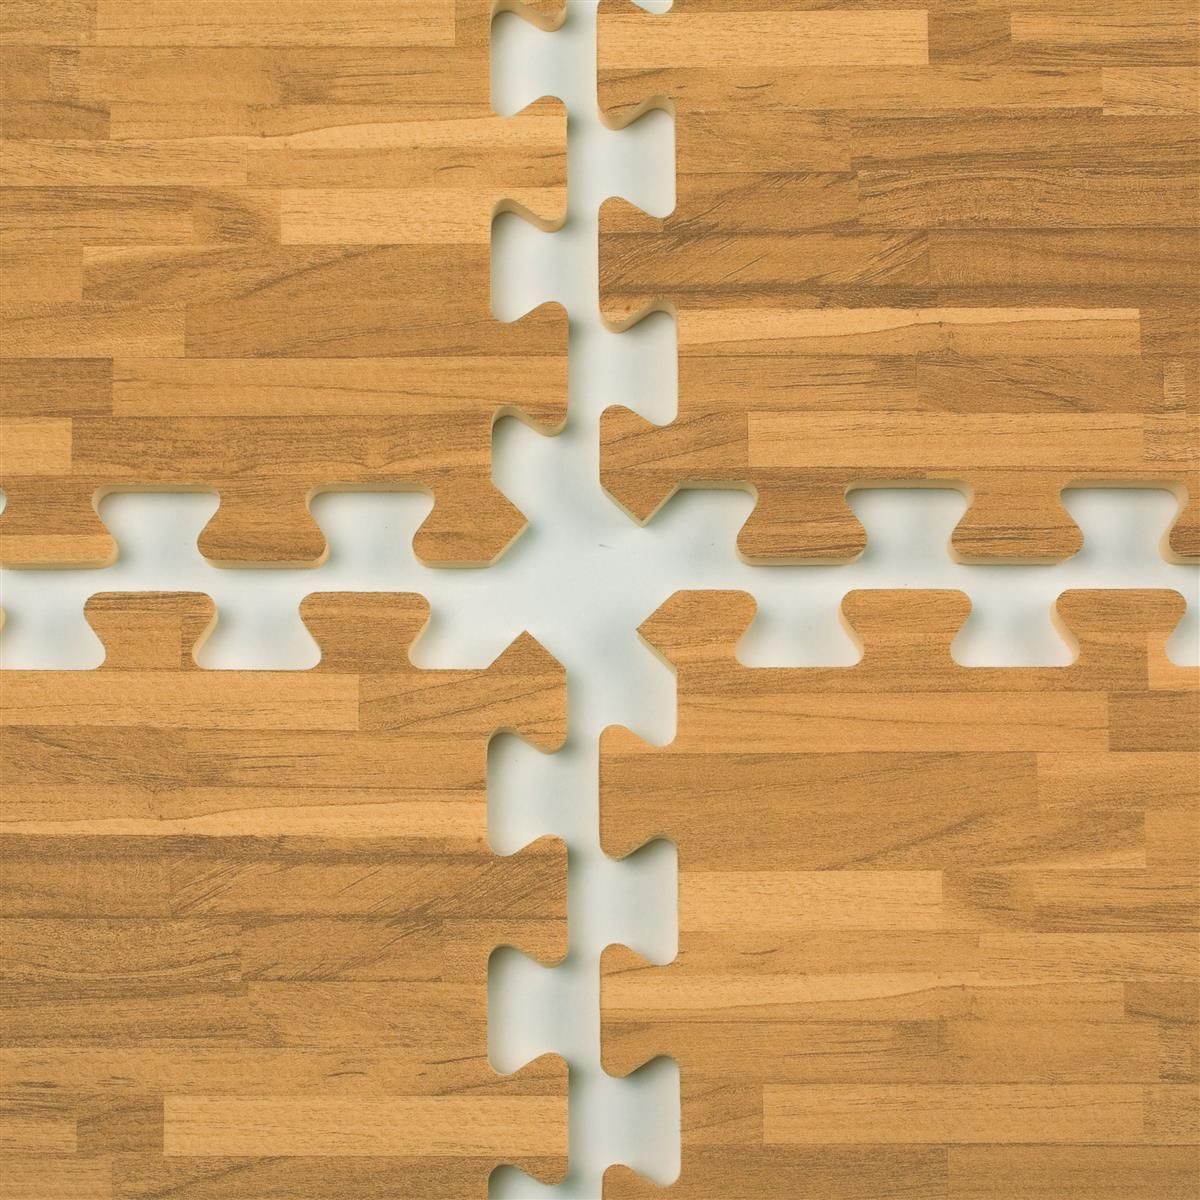 10 X 10 Interlocking Foam Mat Wood Grain Interlocking Flooring Temporary Flooring Foam Flooring